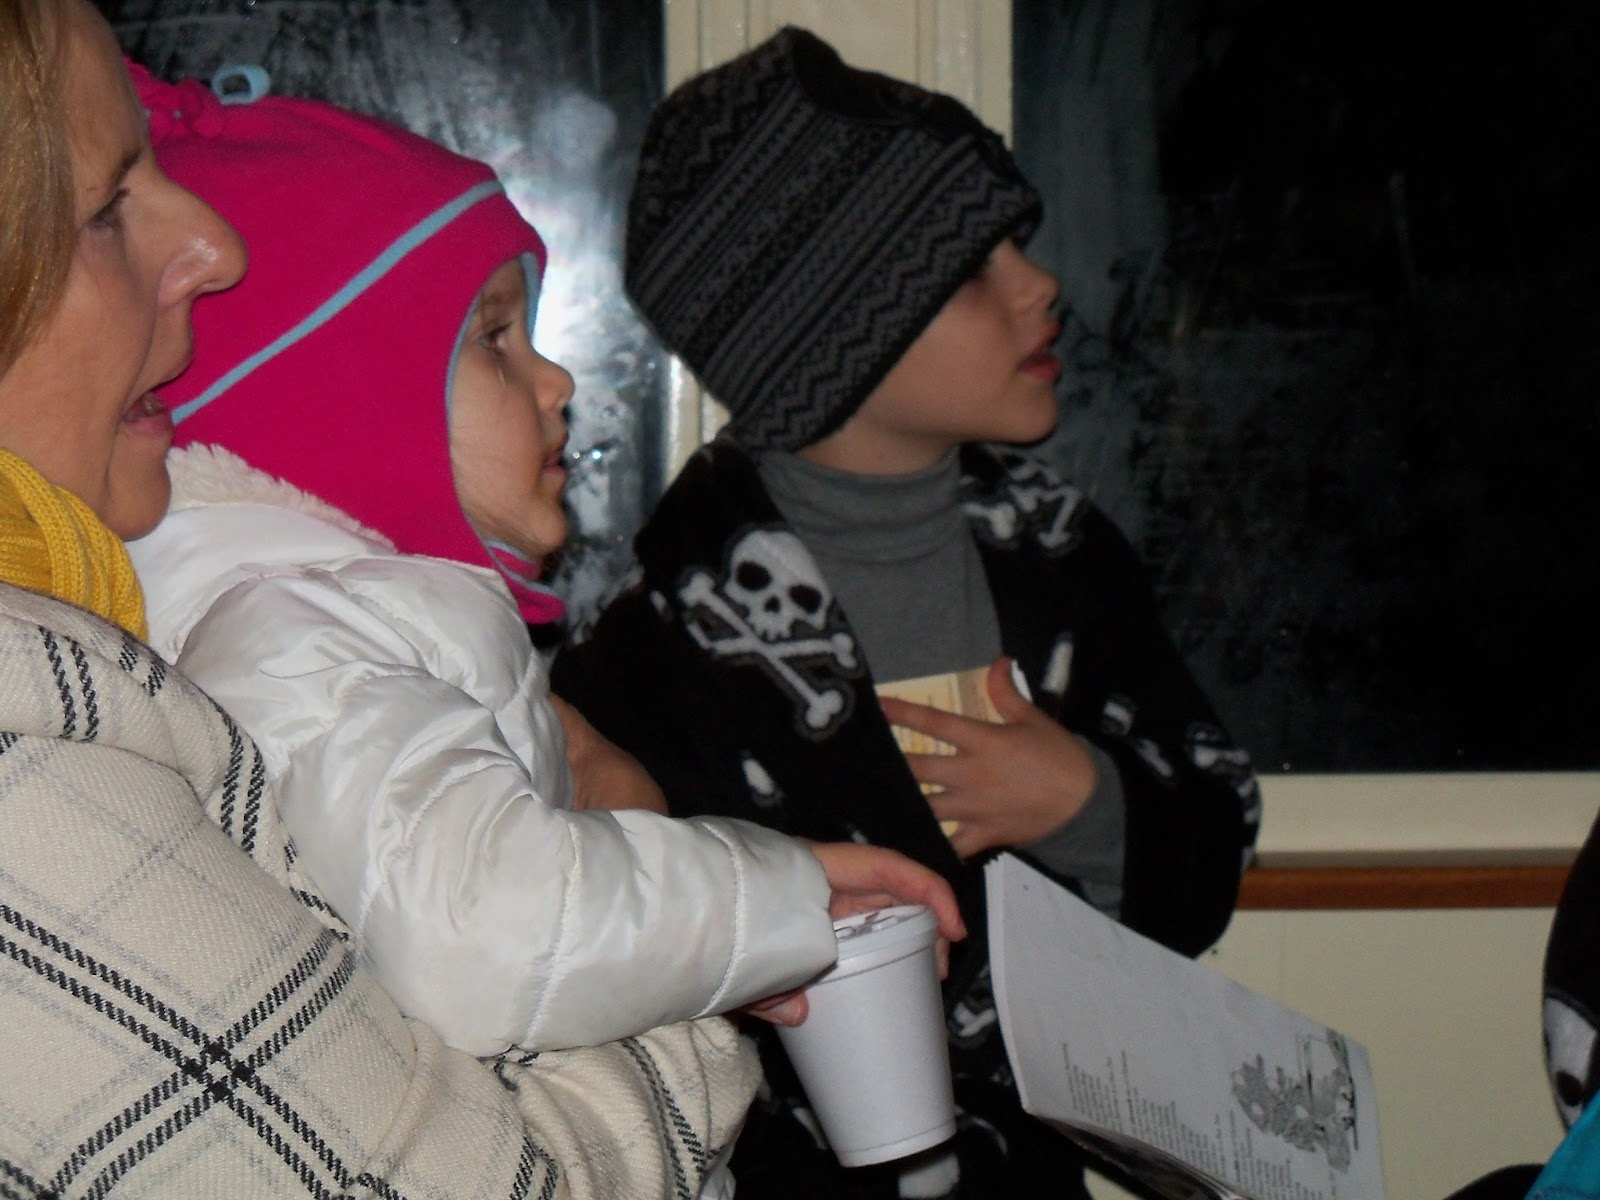 Polar Express Christmas Train 2011 - 115_0990.JPG